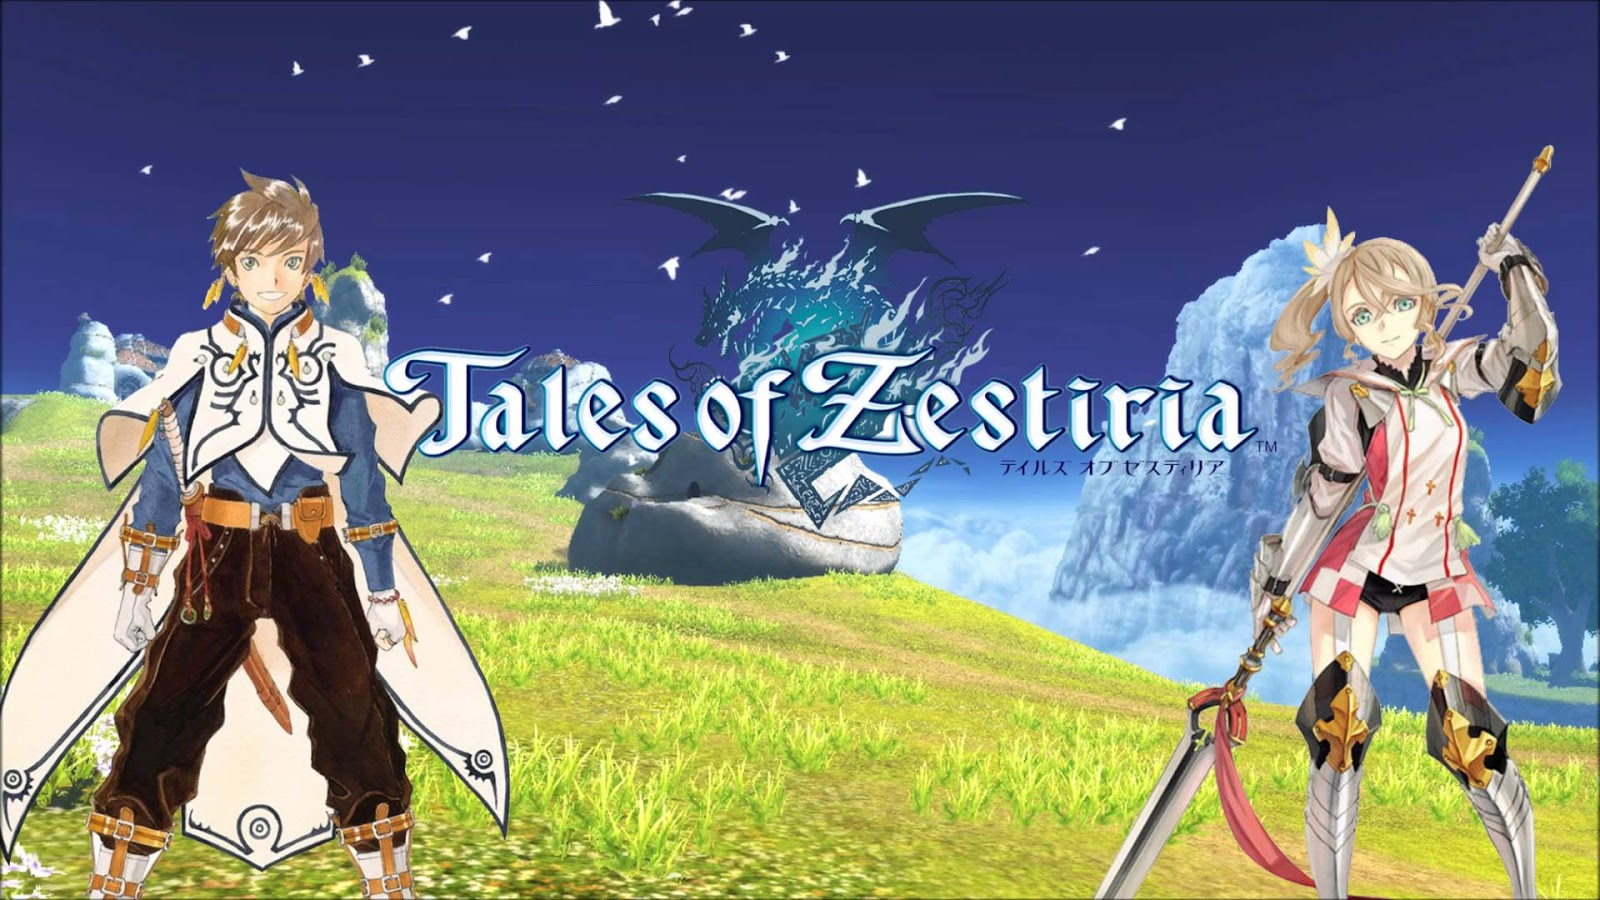 Tales of Zestiria 24 Cheats in 1 Cheat Table